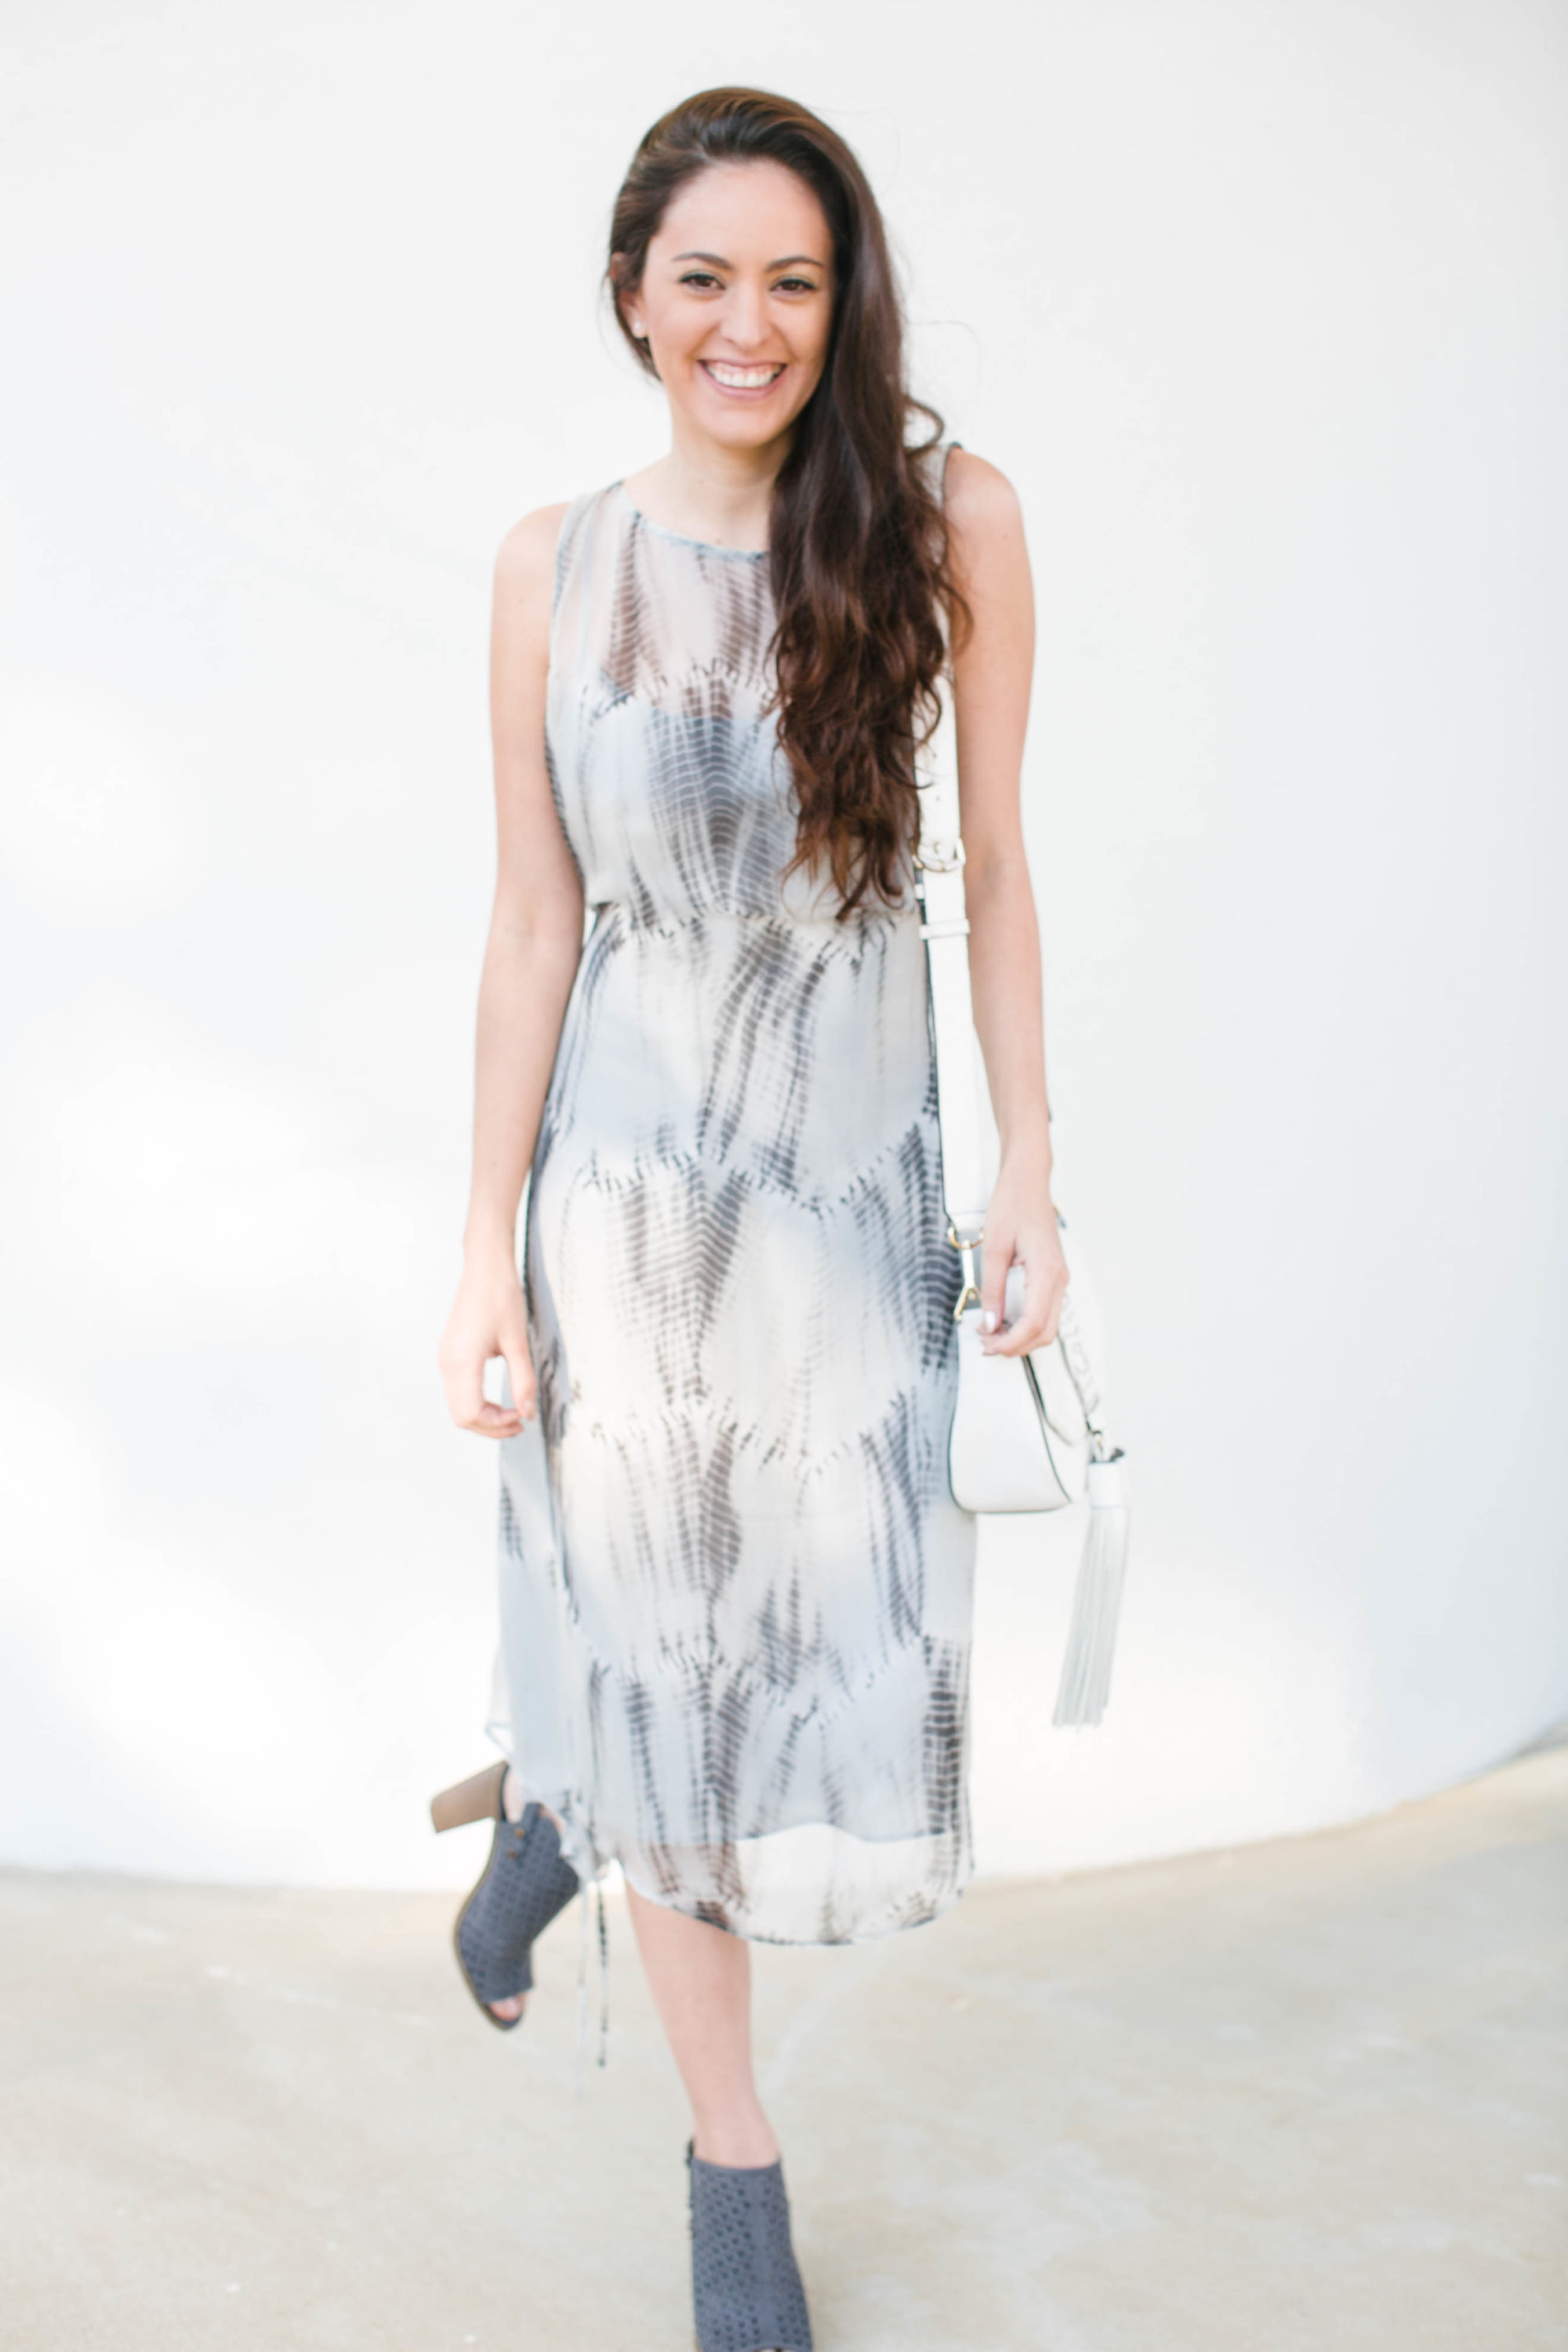 EILEEN FISHER at saks, winter to spring style, feminine spring style, silk dress